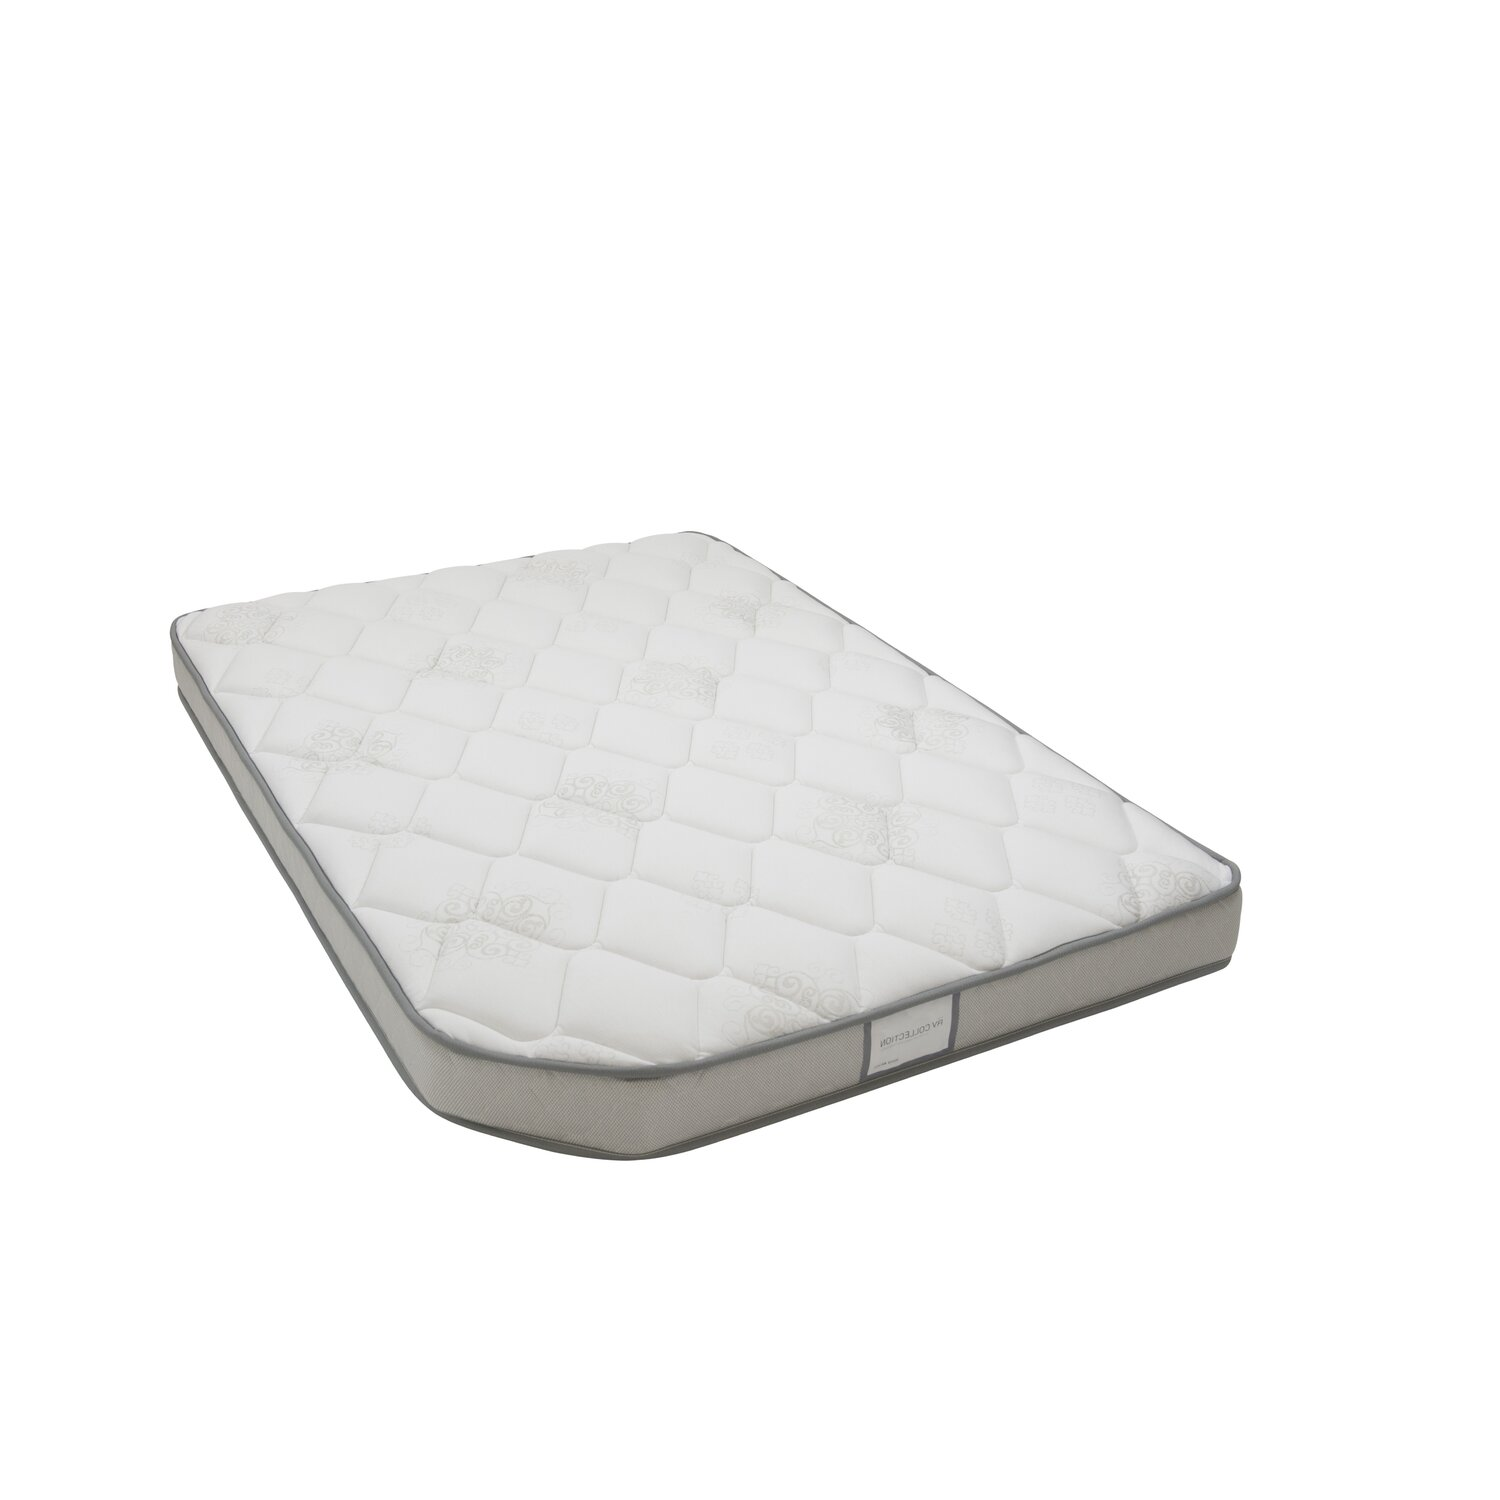 The Cheapest Zedbed 60 By 80 By 11-Inch Dream Pure Medium Gel Infused Slow Release Memory Foam Mattress, Queen Online